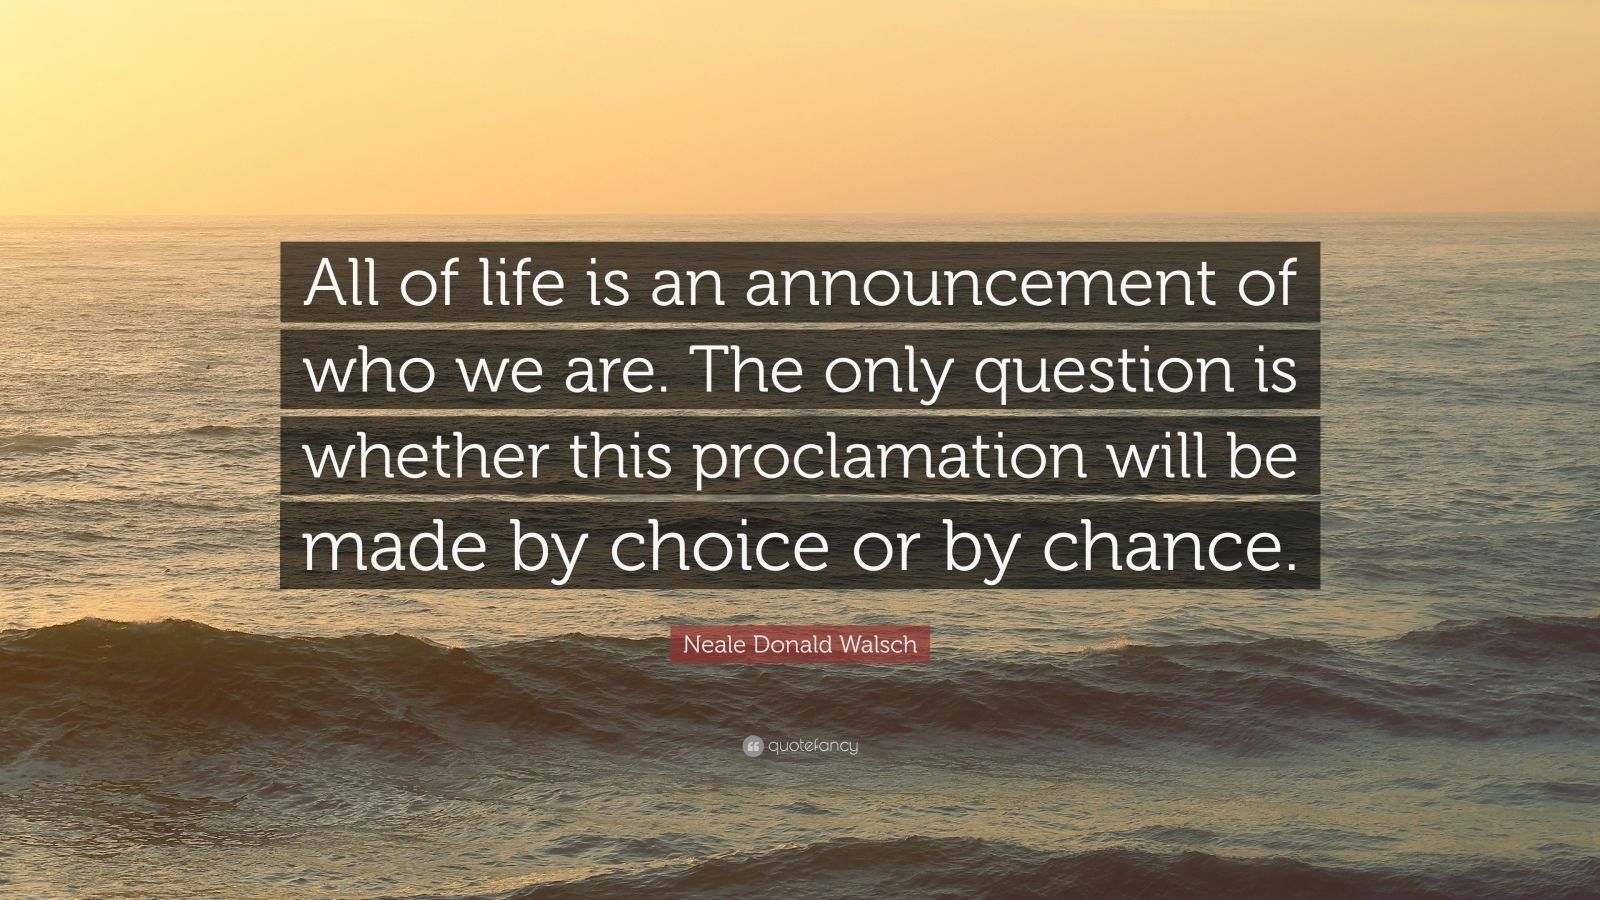 """Neale Donald Walsch Quote: """"All of life is an announcement of who we are. The only question is whether this proclamation will be made by choice or by chance."""""""